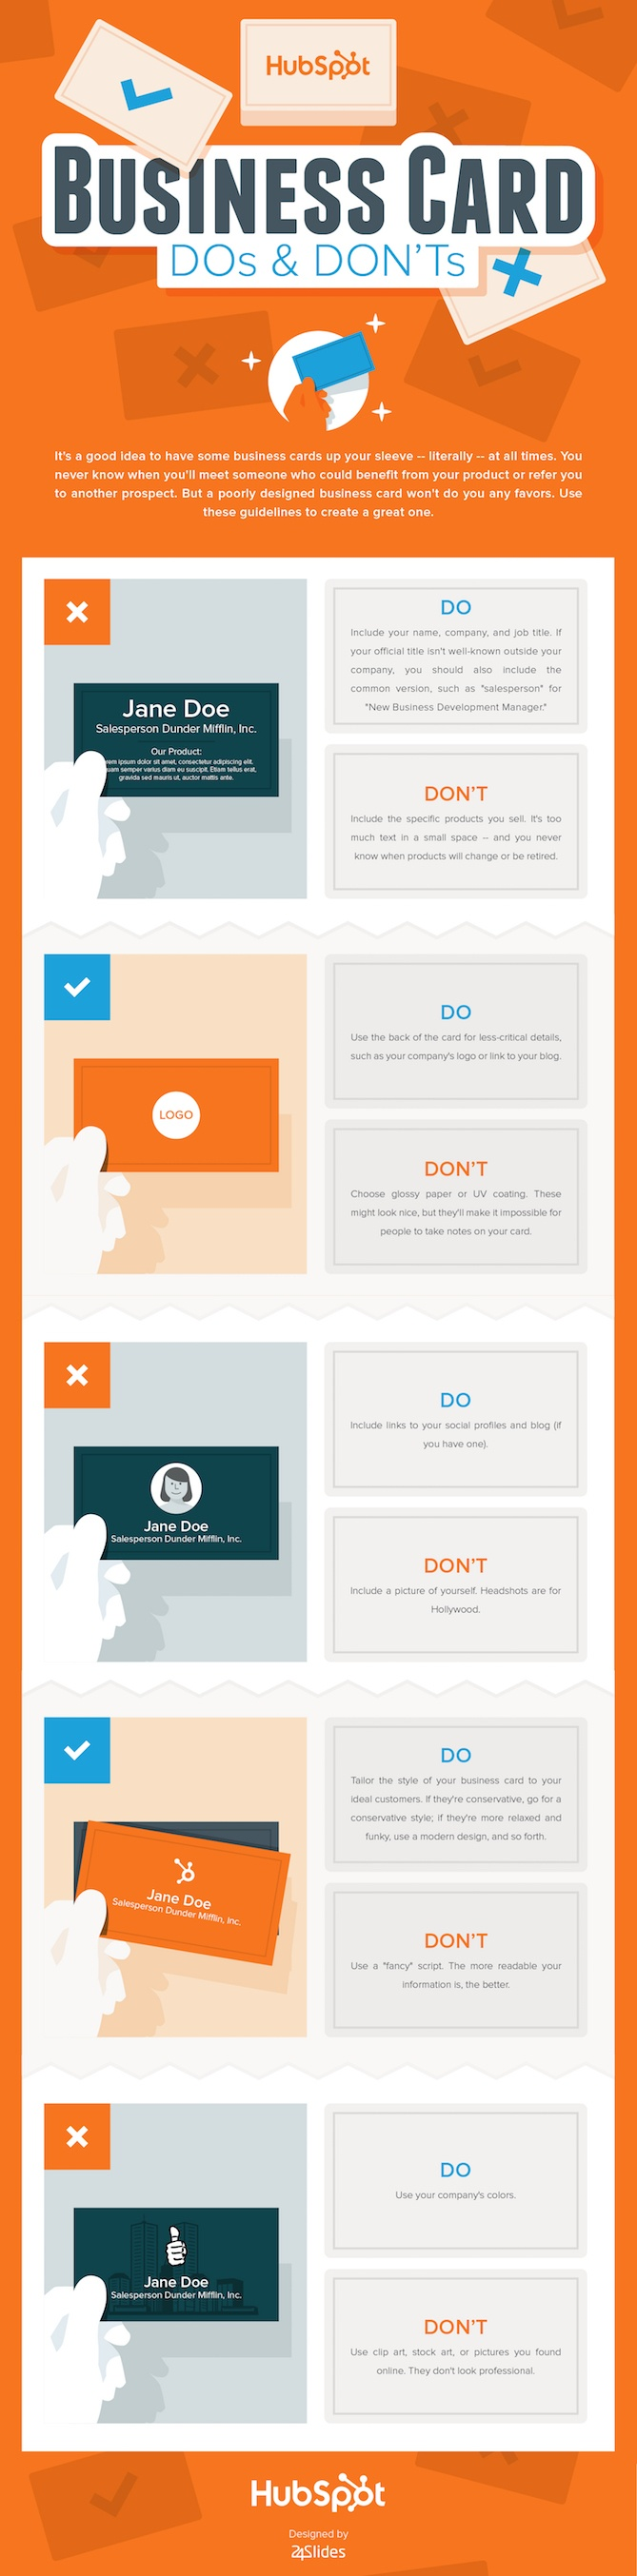 10 sales business card dos and donts every rep should know salesbusinesscarddosdontsinfographicg colourmoves